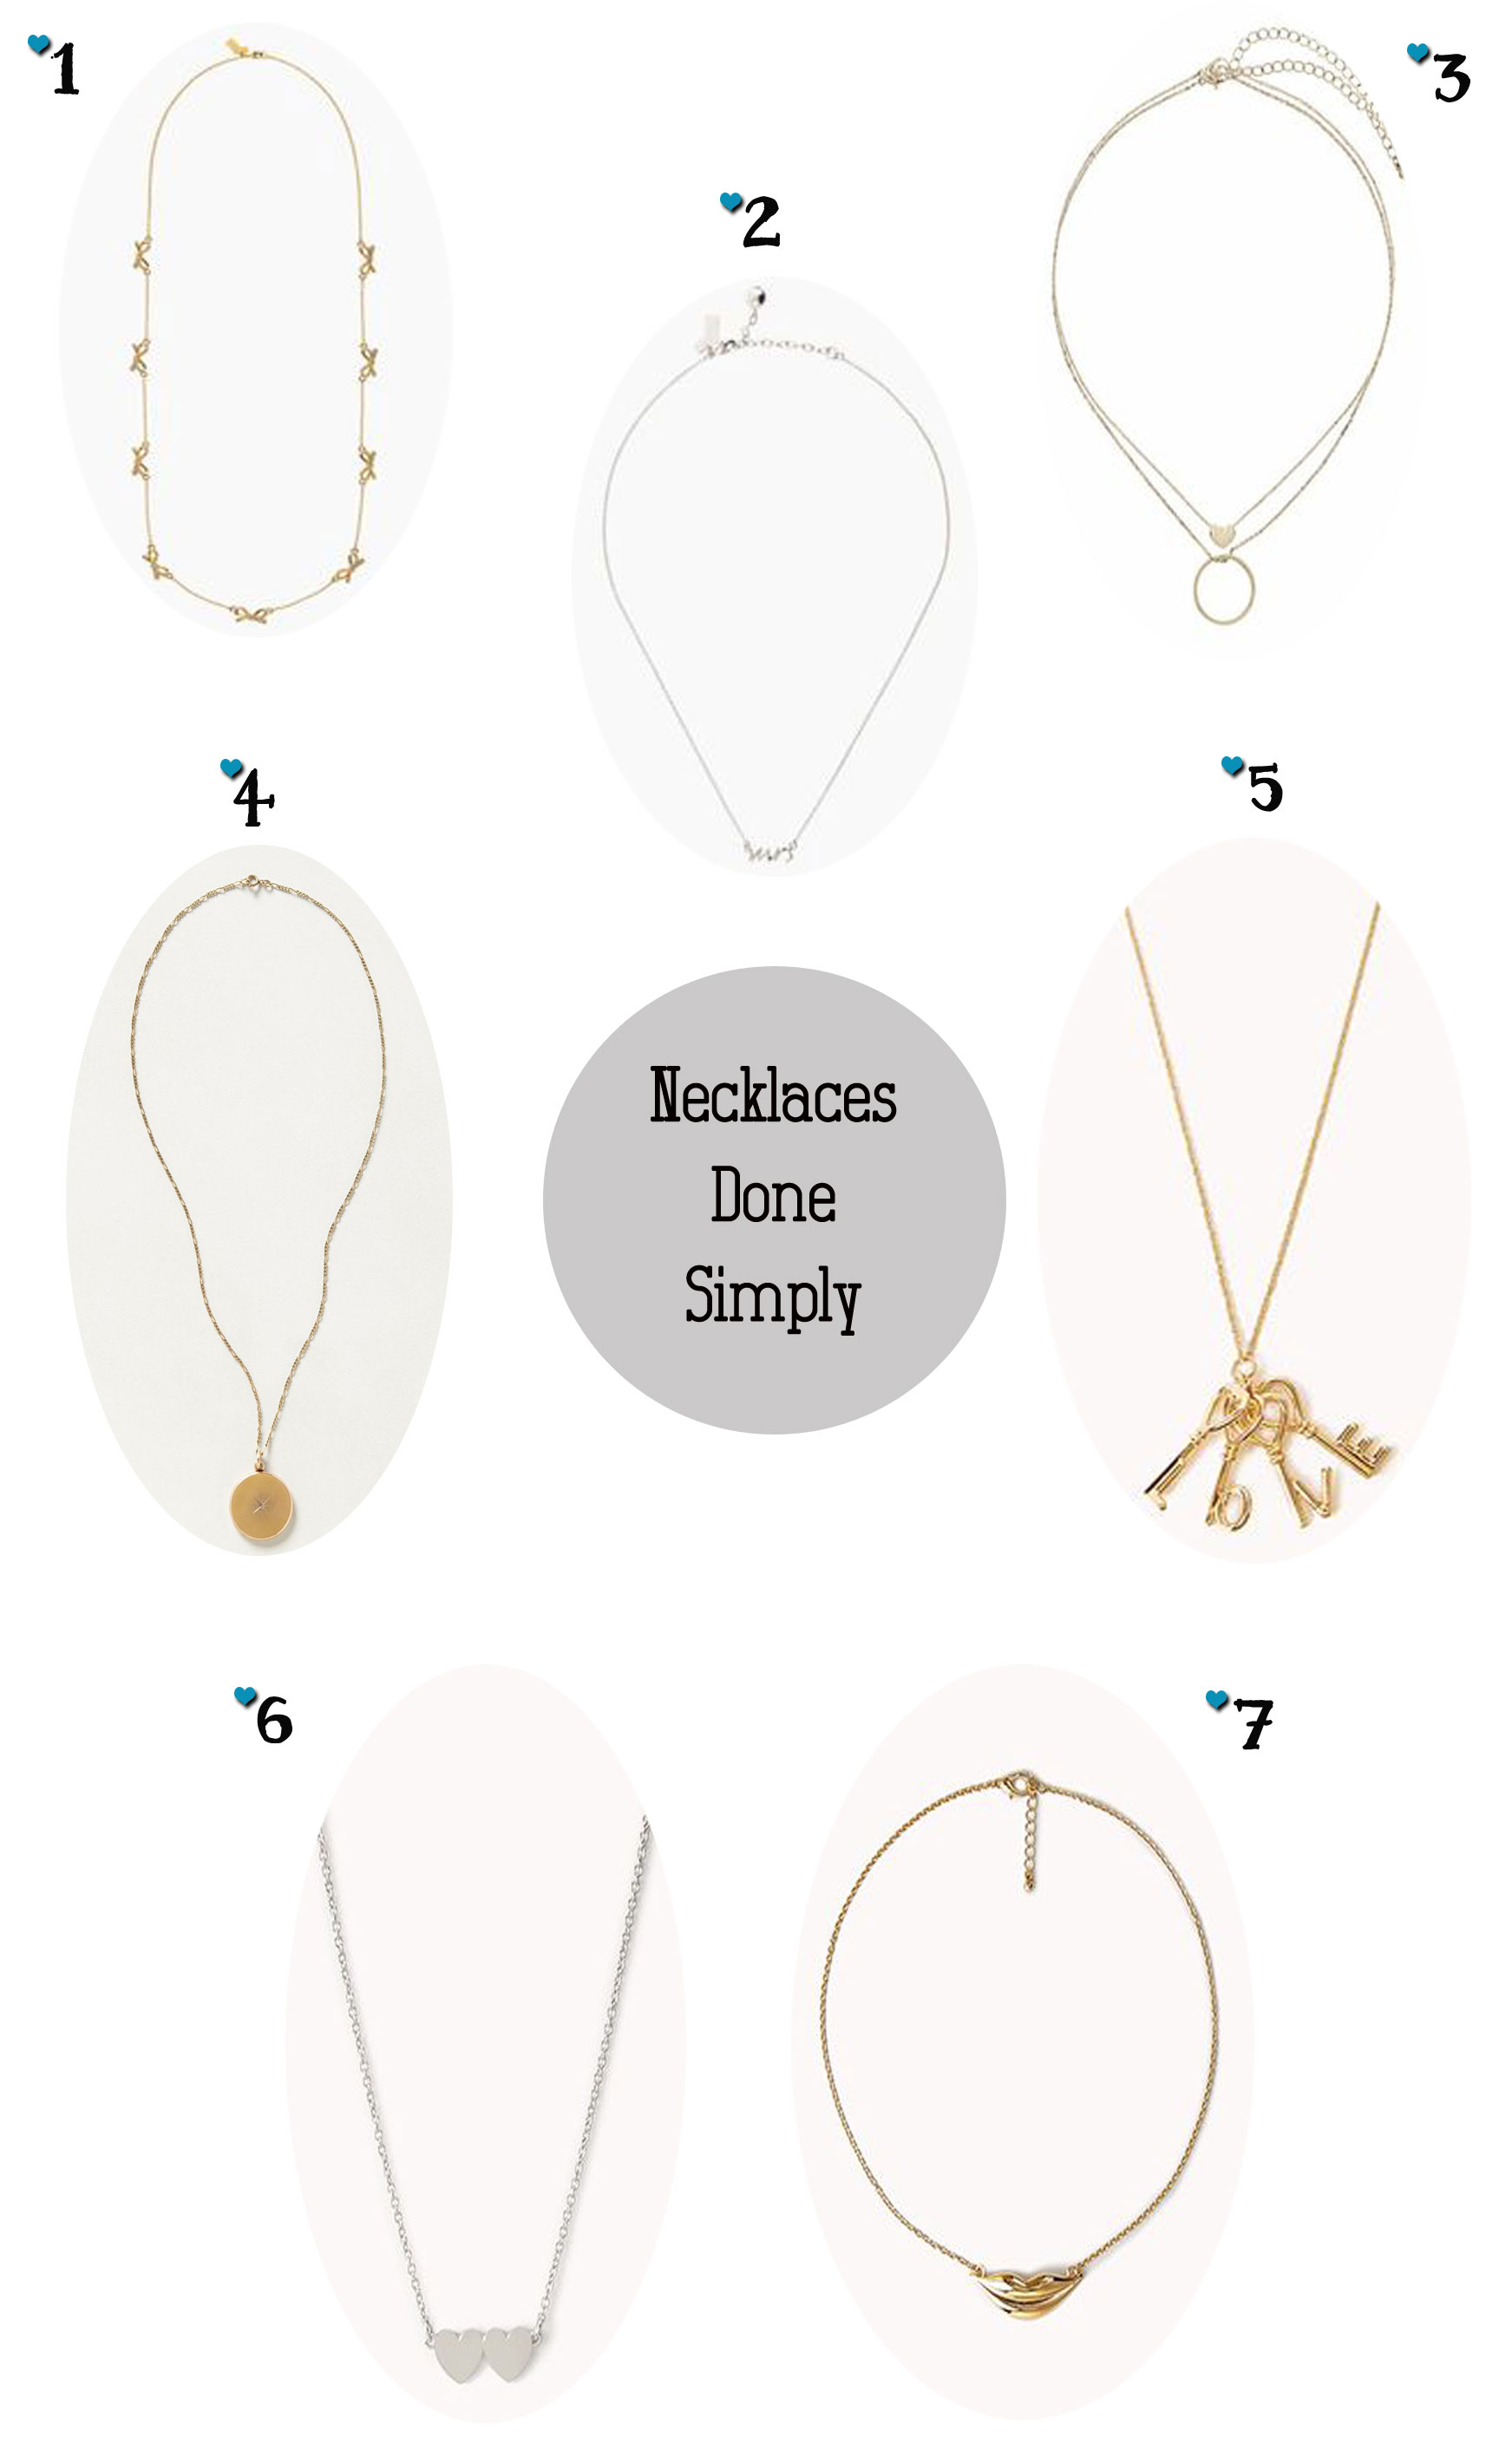 necklaces simple collar pendants oliver jewellery necklace tonal kora bonas statement bead category mixed